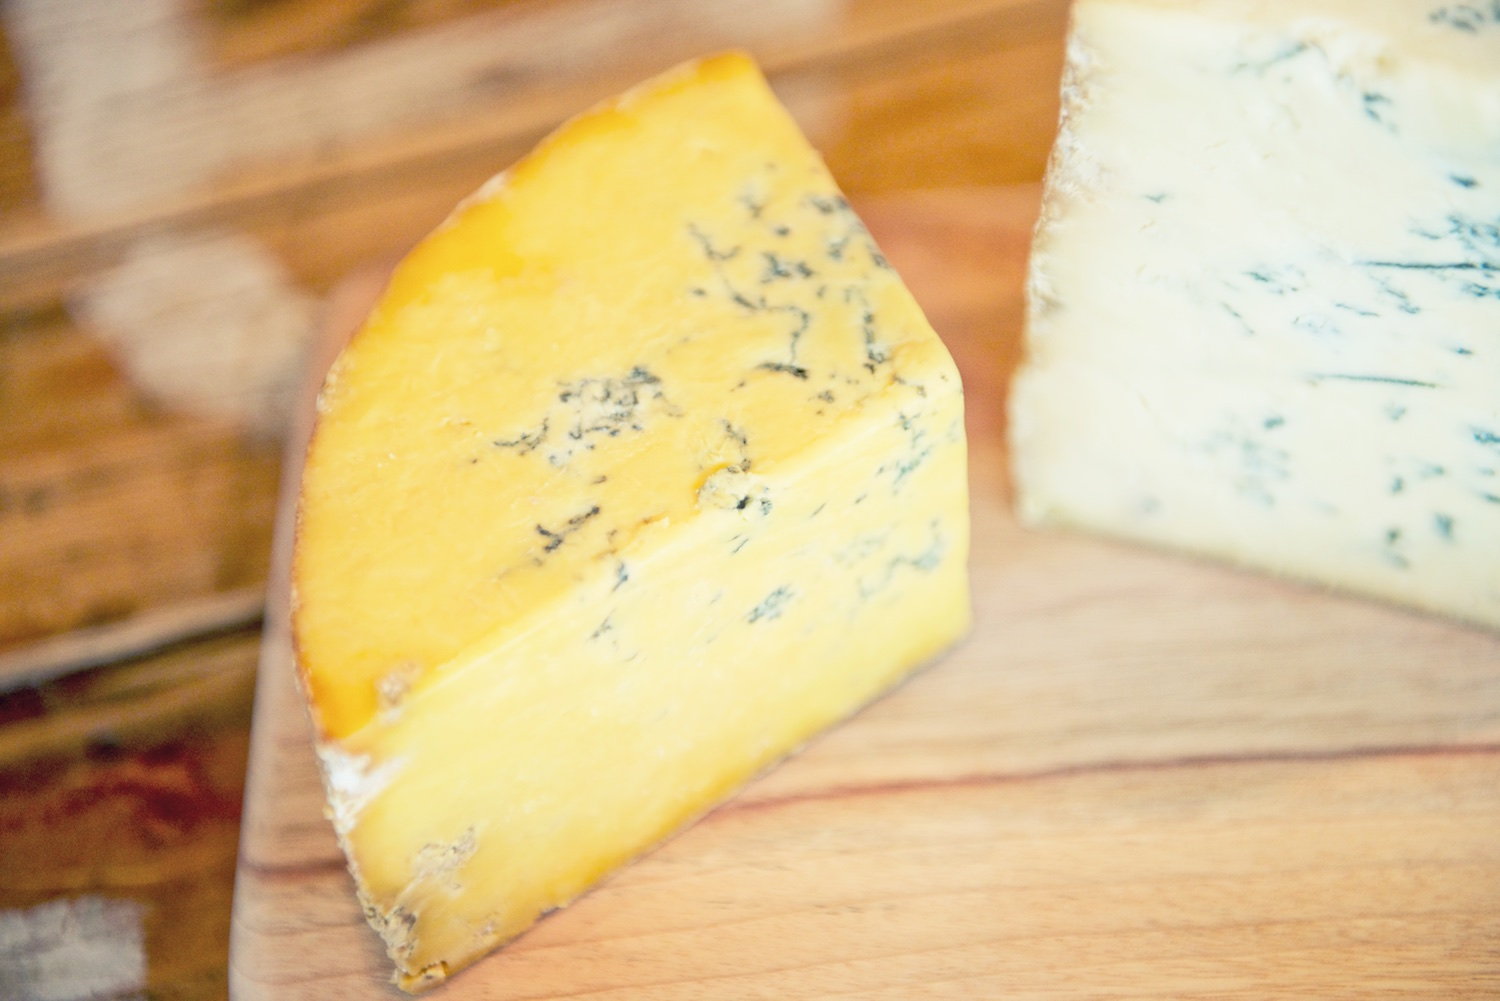 Blue Cheese Special 1095.jpg